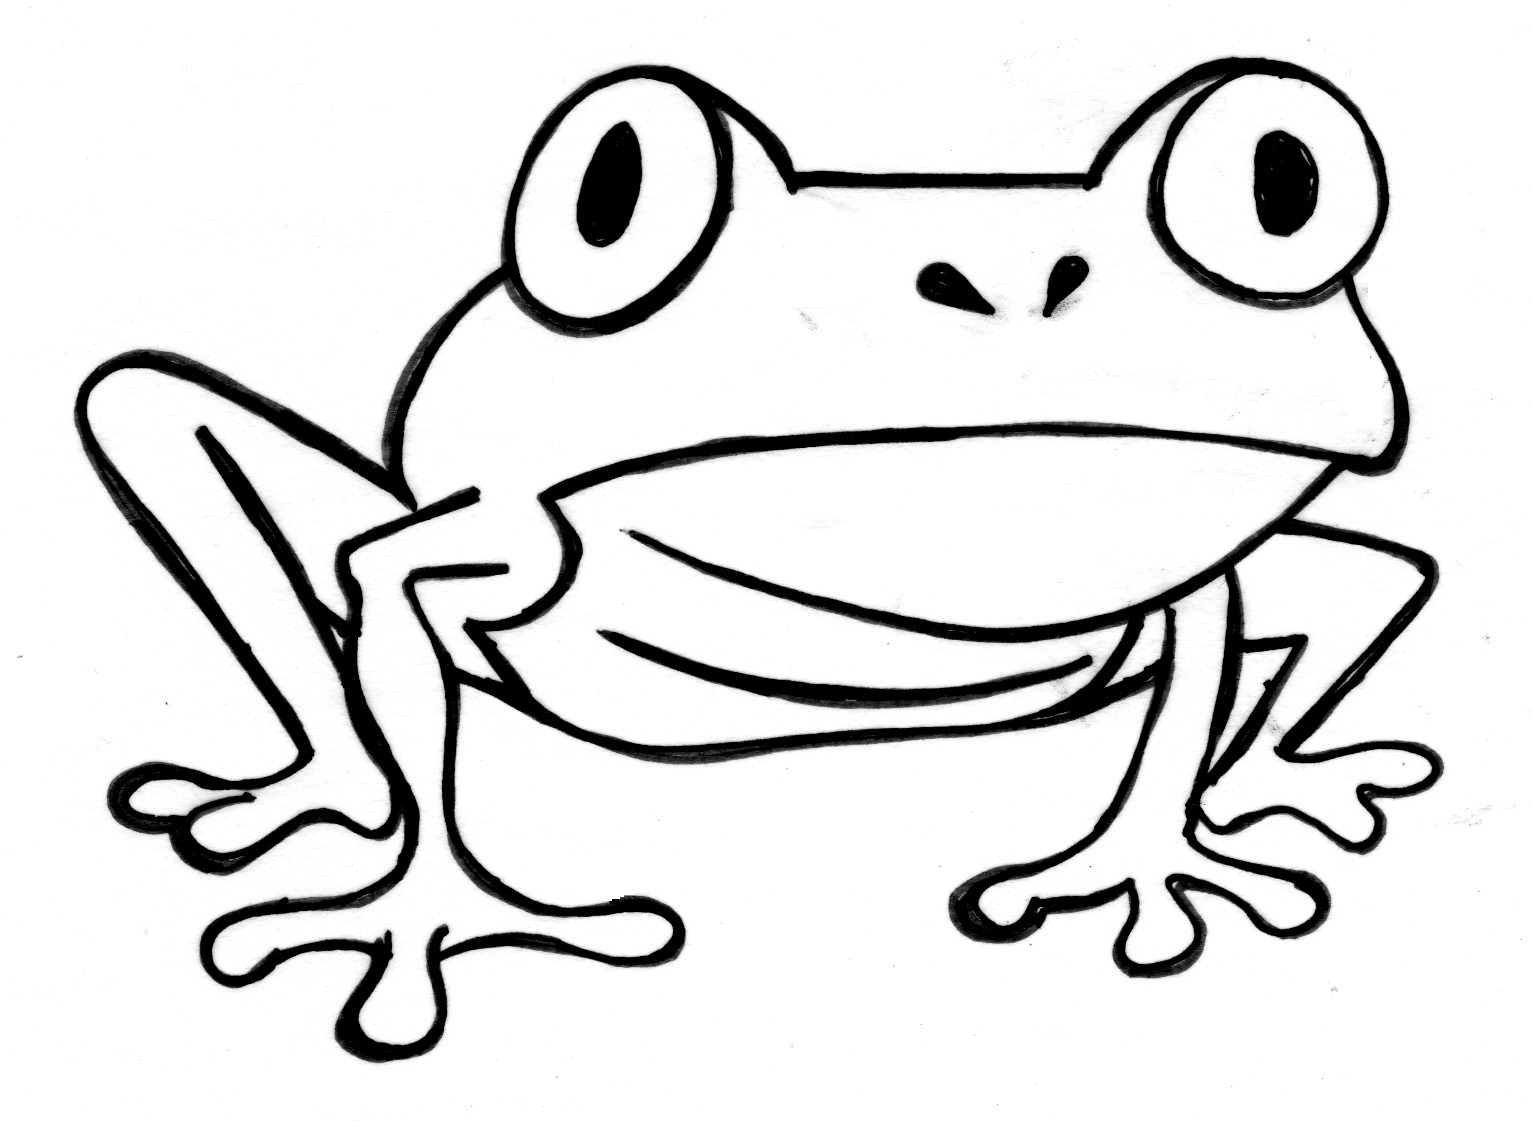 coloring frog outline images frog coloring page coloring page images coloring frog outline